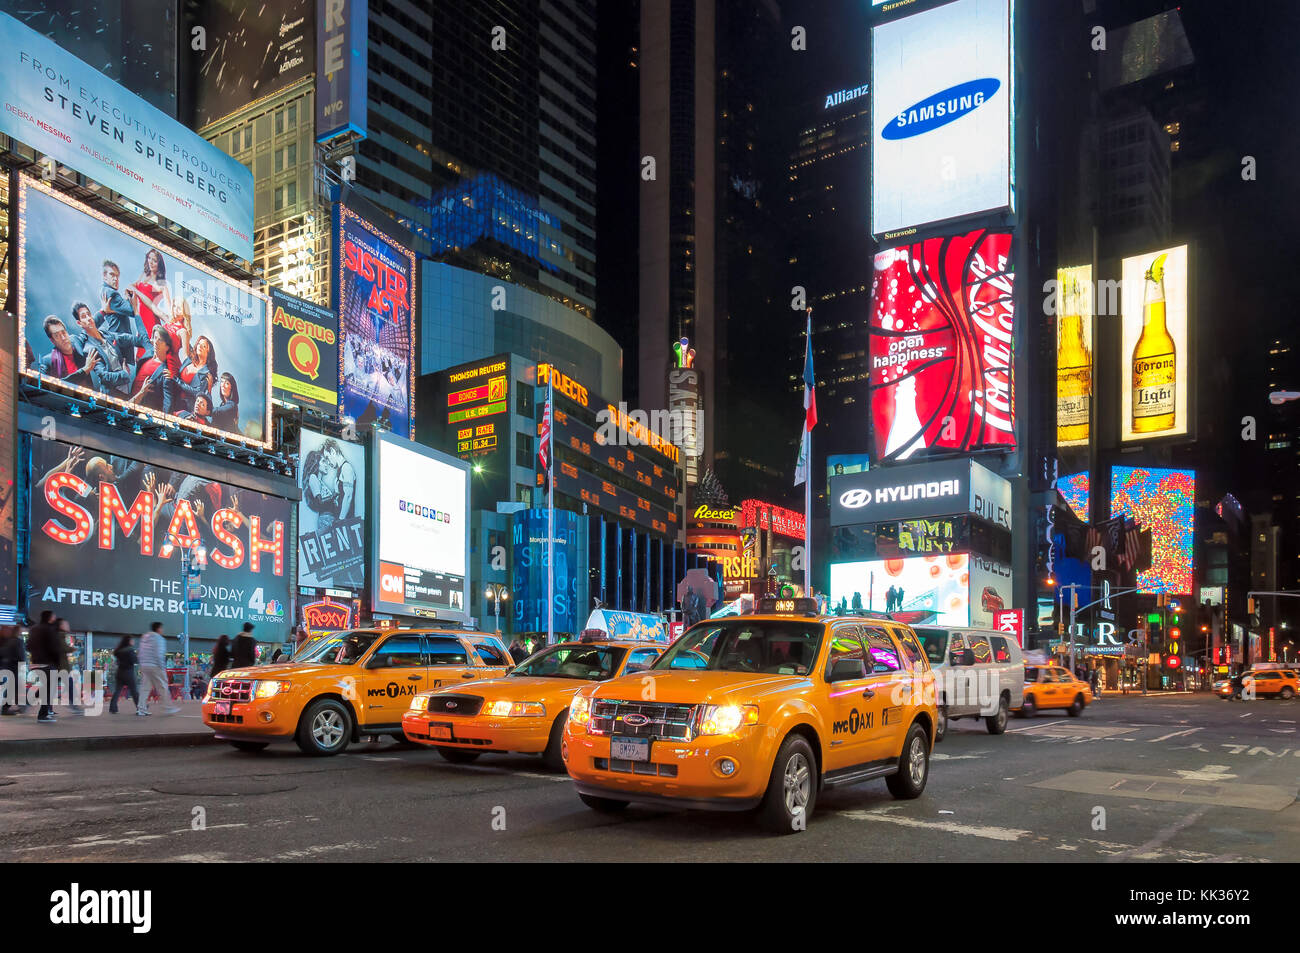 Verkehr in Times Square, New York City Stockbild